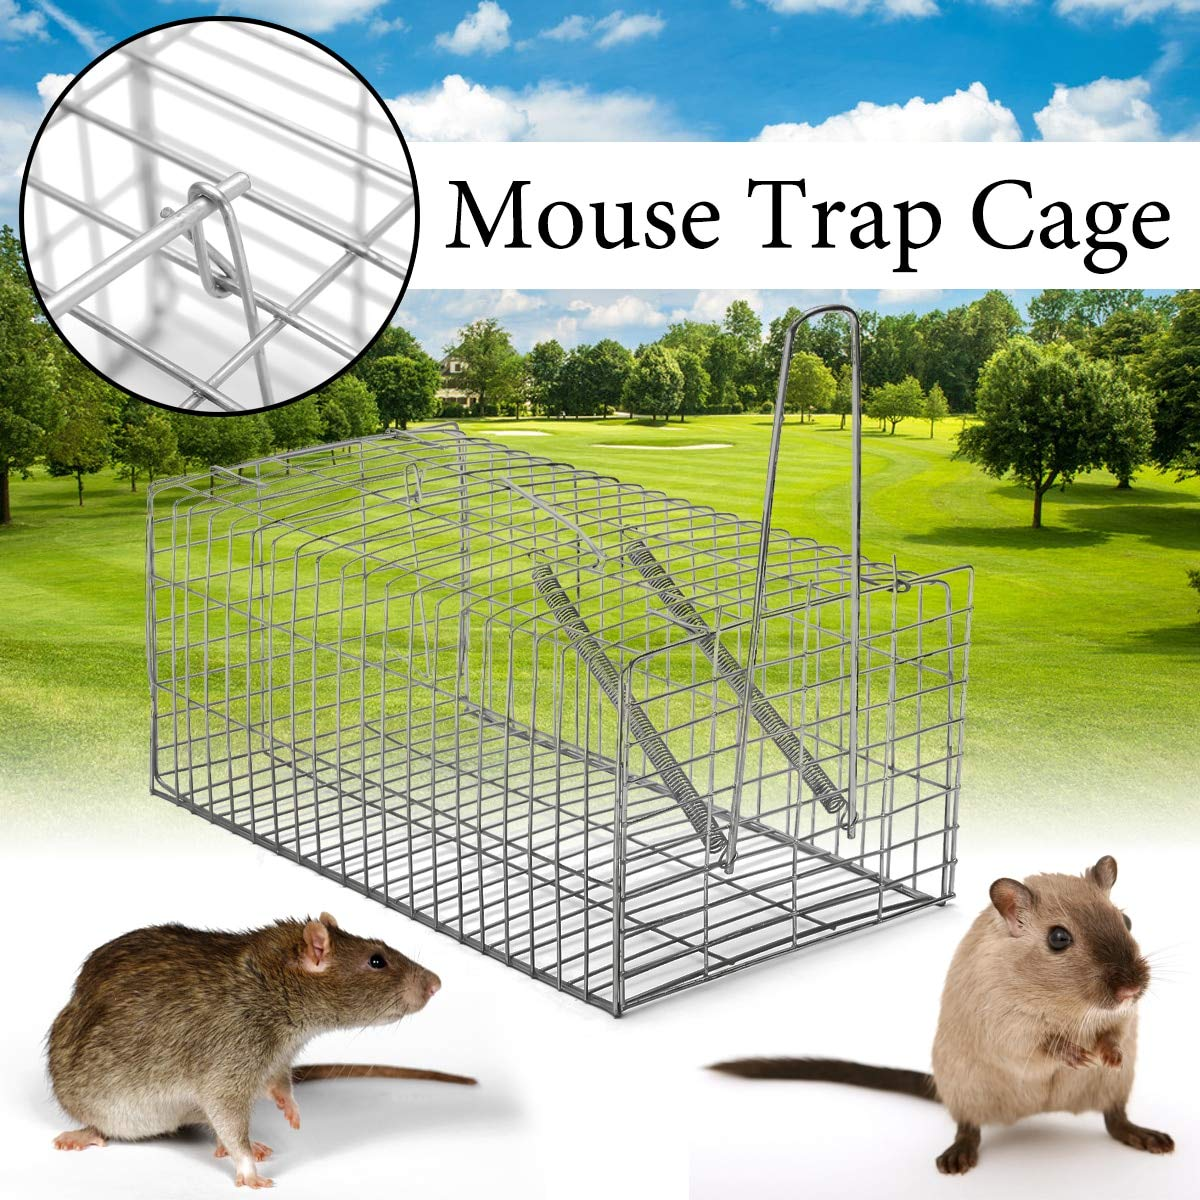 Home Humane Rat Trap Mouse Pest Animal Trap Mice Rodent Repeller Catch Bait Hamster Mouse Trap Cage Pest Control